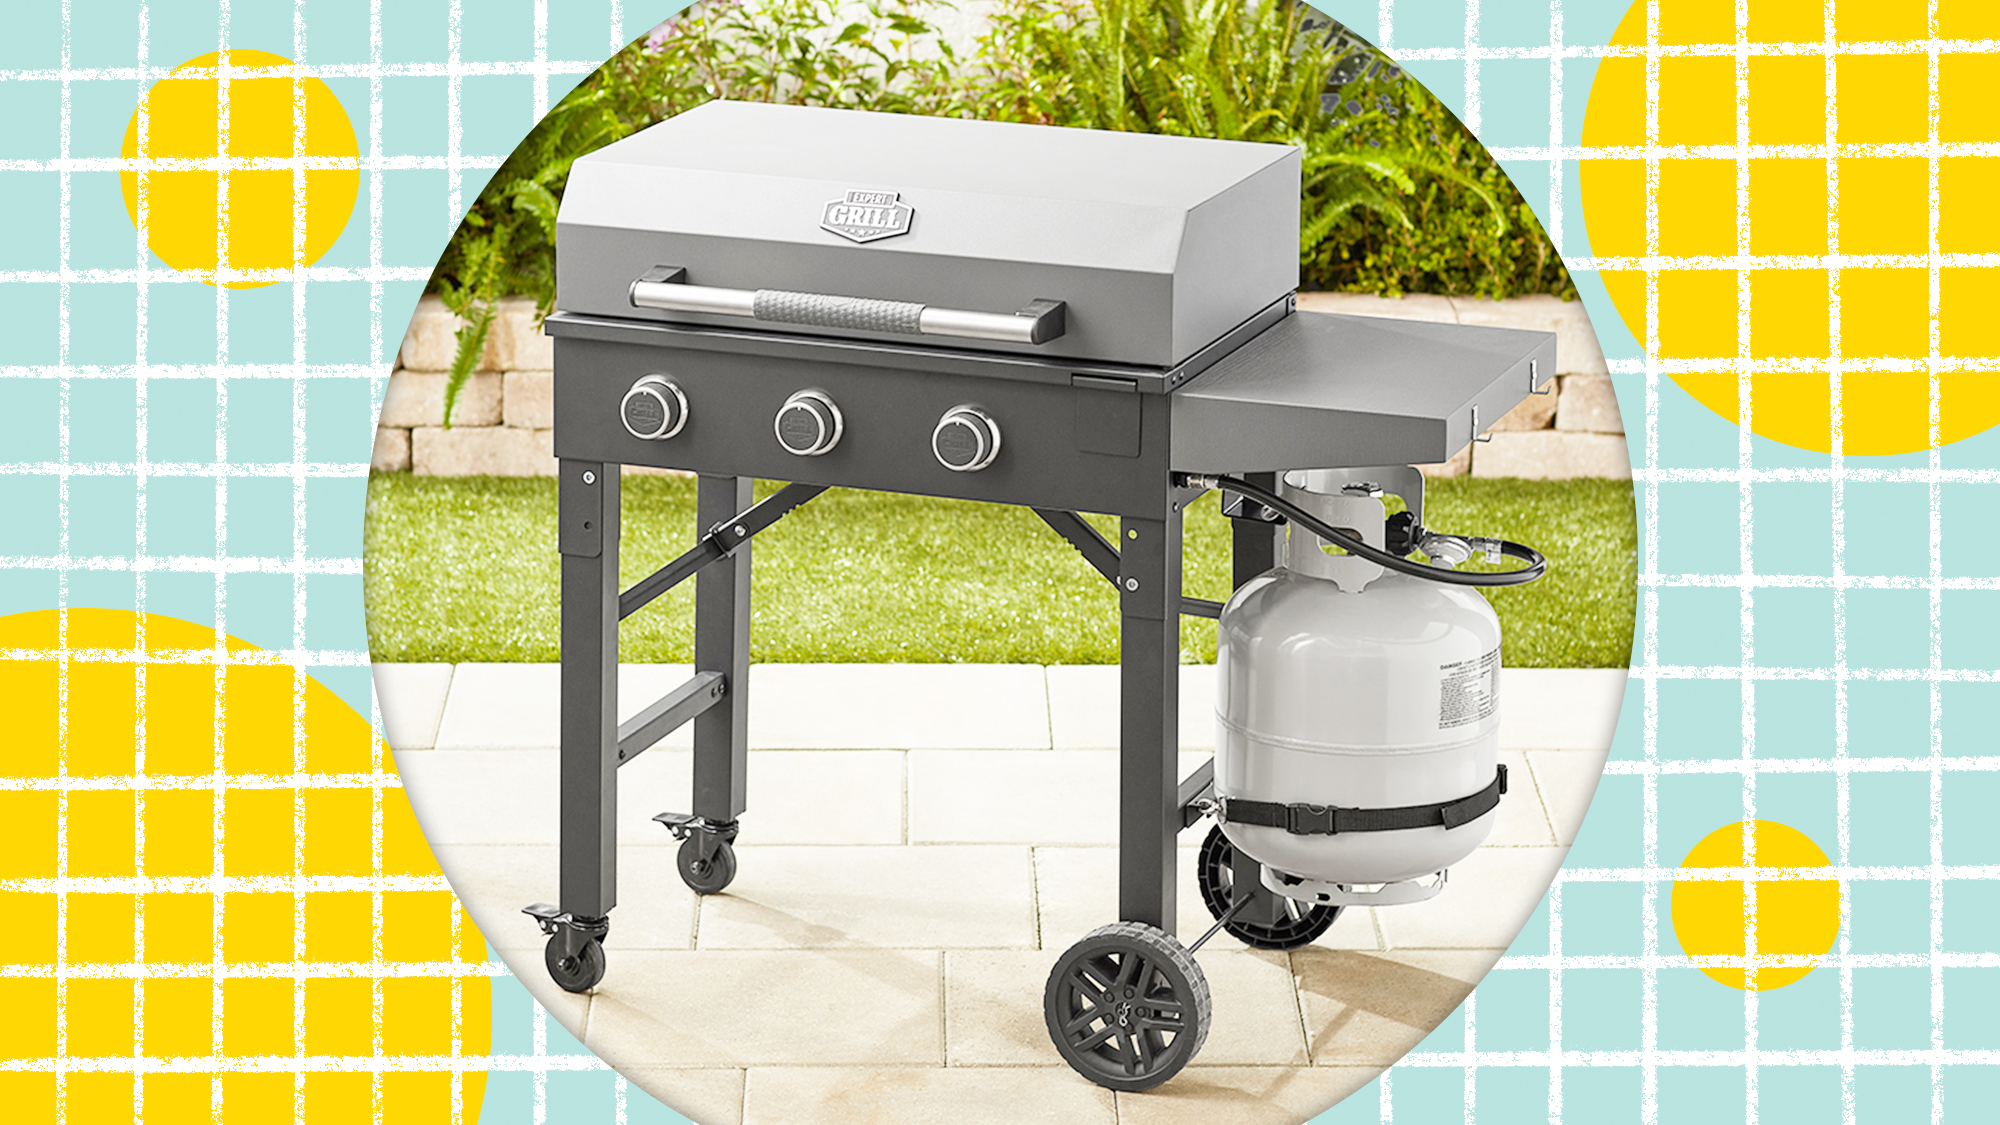 Expert Grill Pioneer 28-Inch Portable Propane Gas Griddle on a designed background